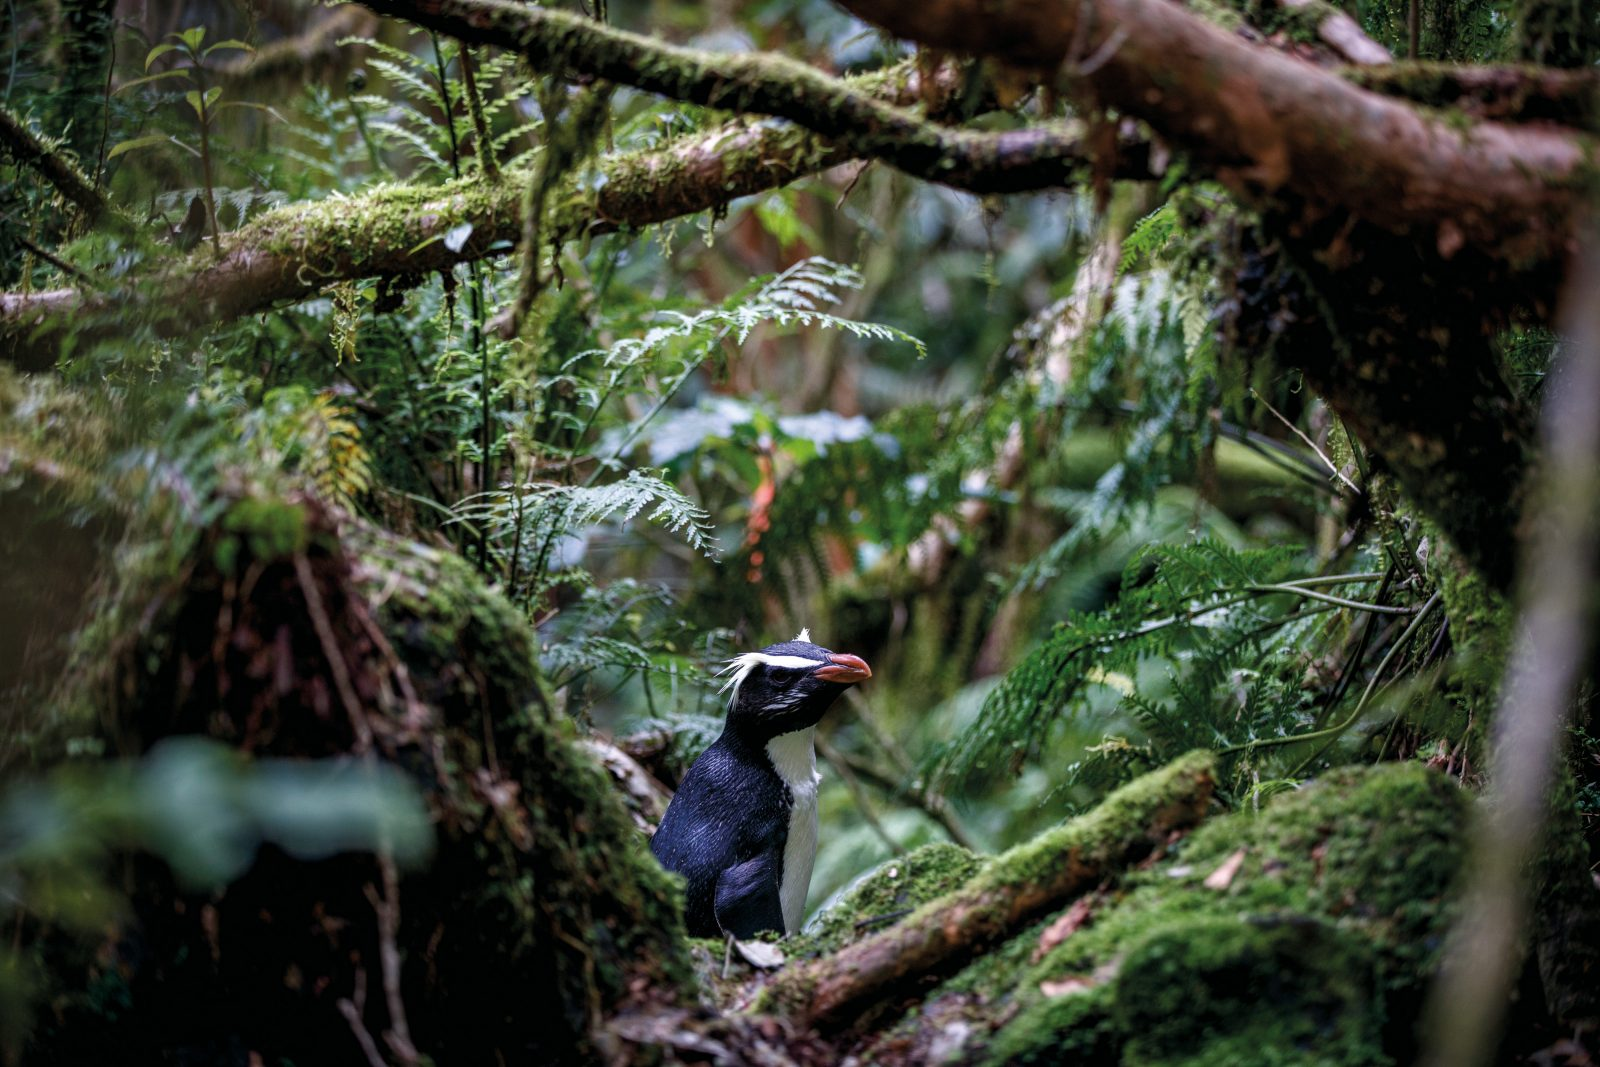 A tawaki returns to its nest in dense Fiordland rainforest. Fossil records suggest tawaki were once found all around the South Island. Their secretive habits may be the result of hunting by humans—the very closely-related Snares crested penguins, isolated on their pest-free refuge south of Stewart Island, are utterly fearless around humans, by contrast. Tawaki are at risk from geological hazards too—tree avalanches are common in Fiordland, as are earthquakes which could trigger landslides that could threaten the population.